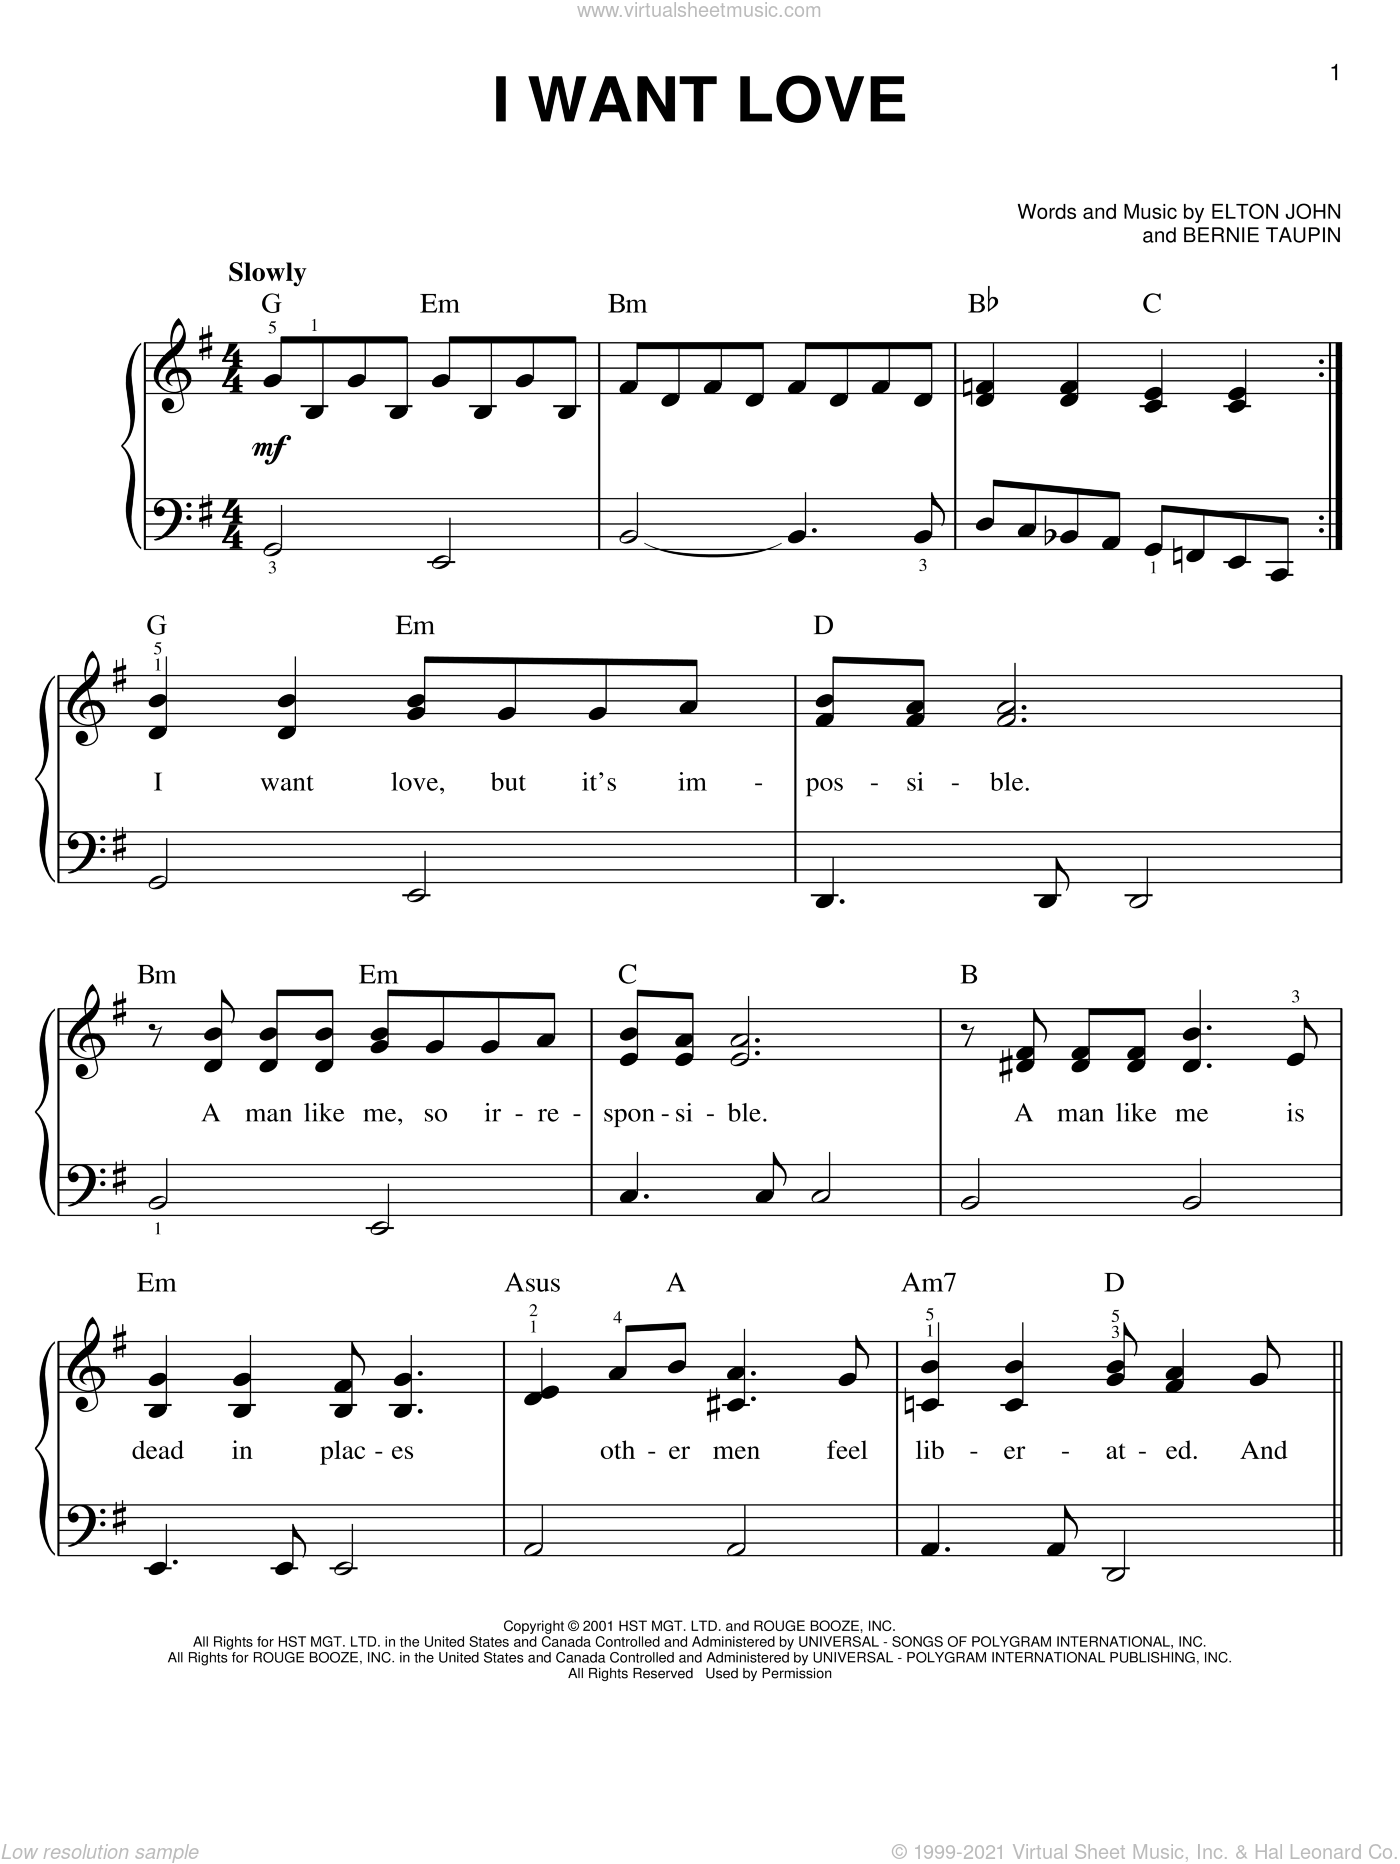 I Want Love sheet music for piano solo by Elton John and Bernie Taupin, easy